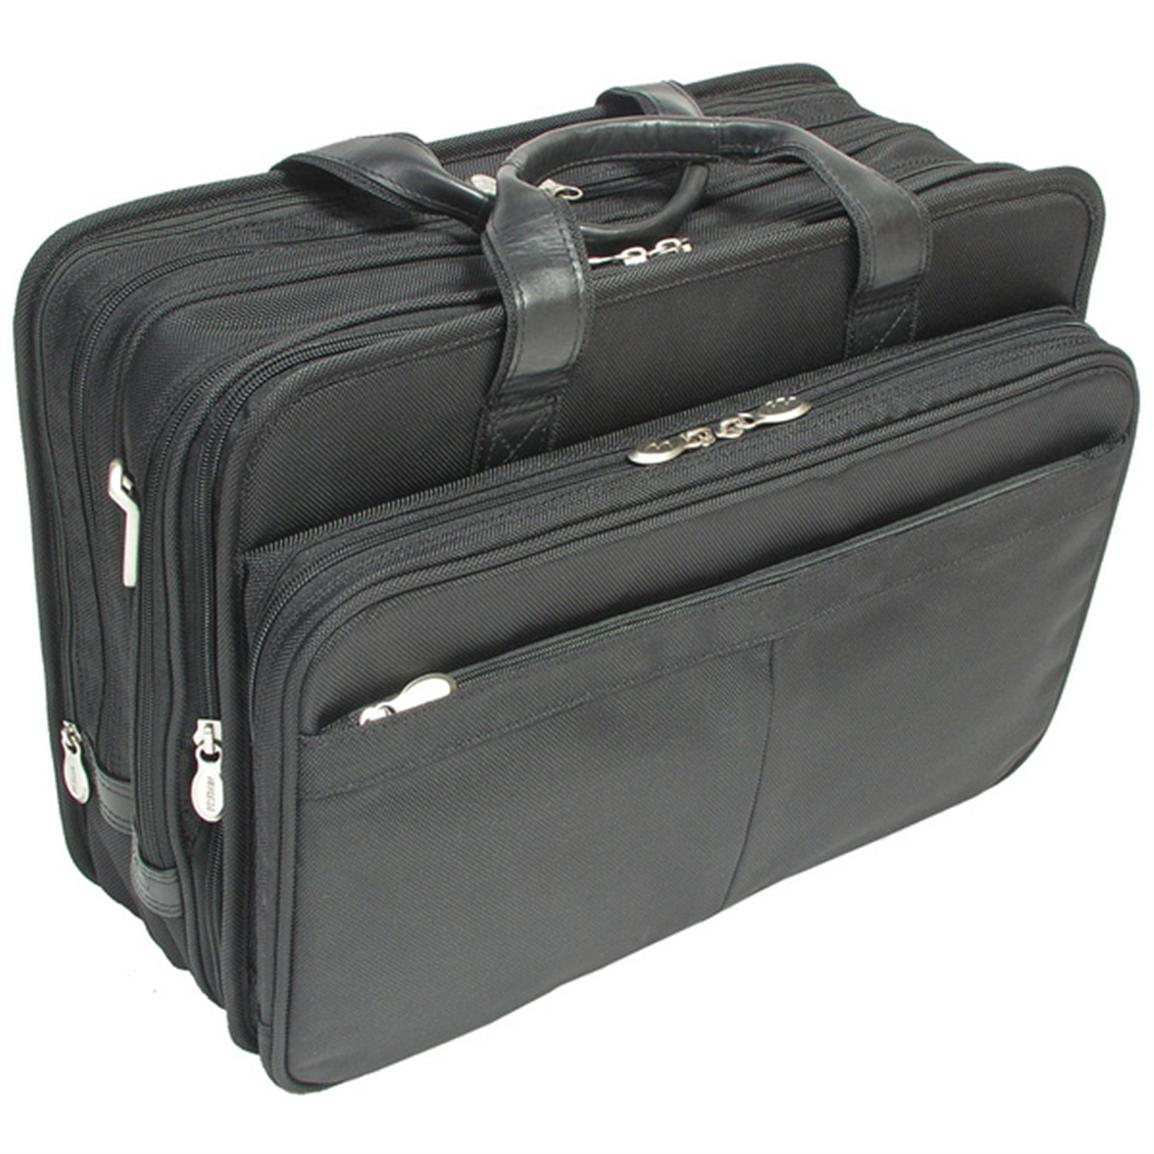 "McKlein USA C Series Walton Nylon Expandable Double Compartment 17"" Laptop Case with Removable Sleeve, Black"